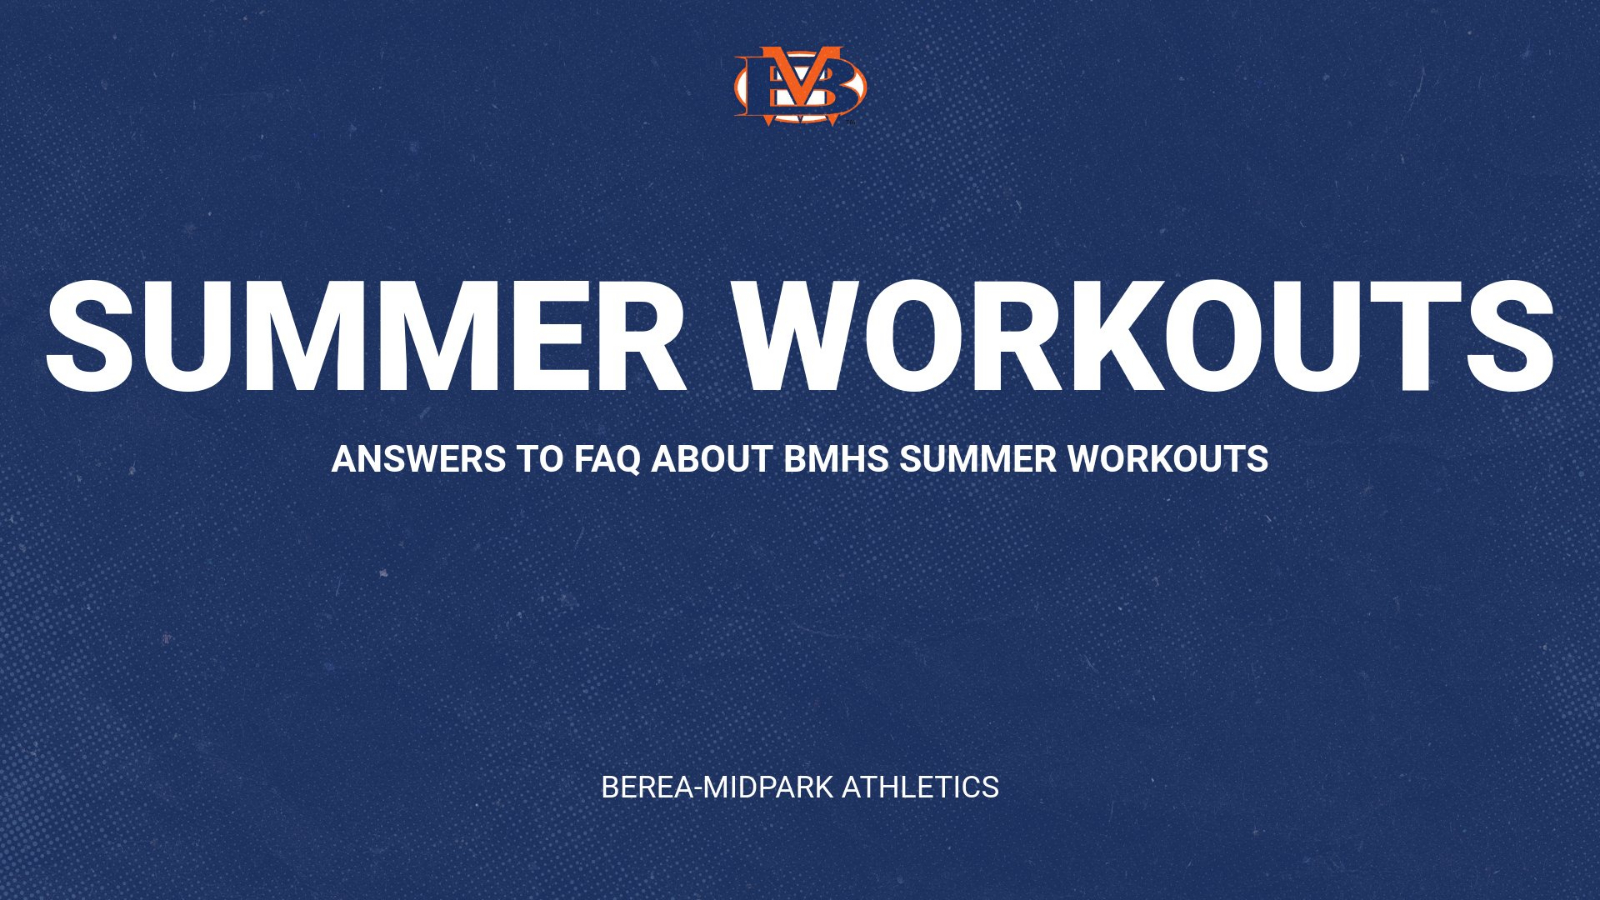 Summer Workouts and Athletic Reopening Frequently Asked Questions